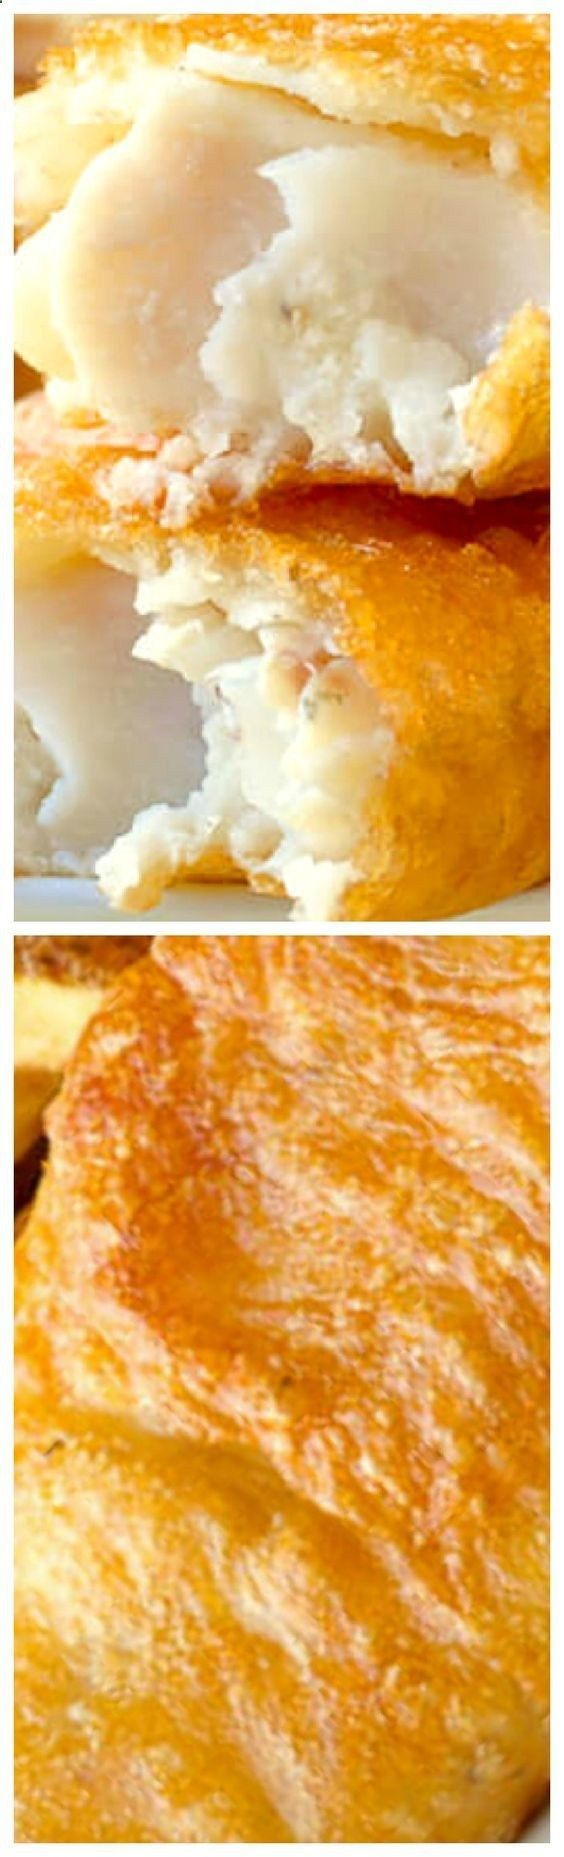 Learn The Secret To Super Crispy Fish and Chips ~ After years of experimenting Ive perfected my homemade version of fish and chips that uses part rice flour in the batter recipe for guaranteed crunch. #breadedfishrecipes